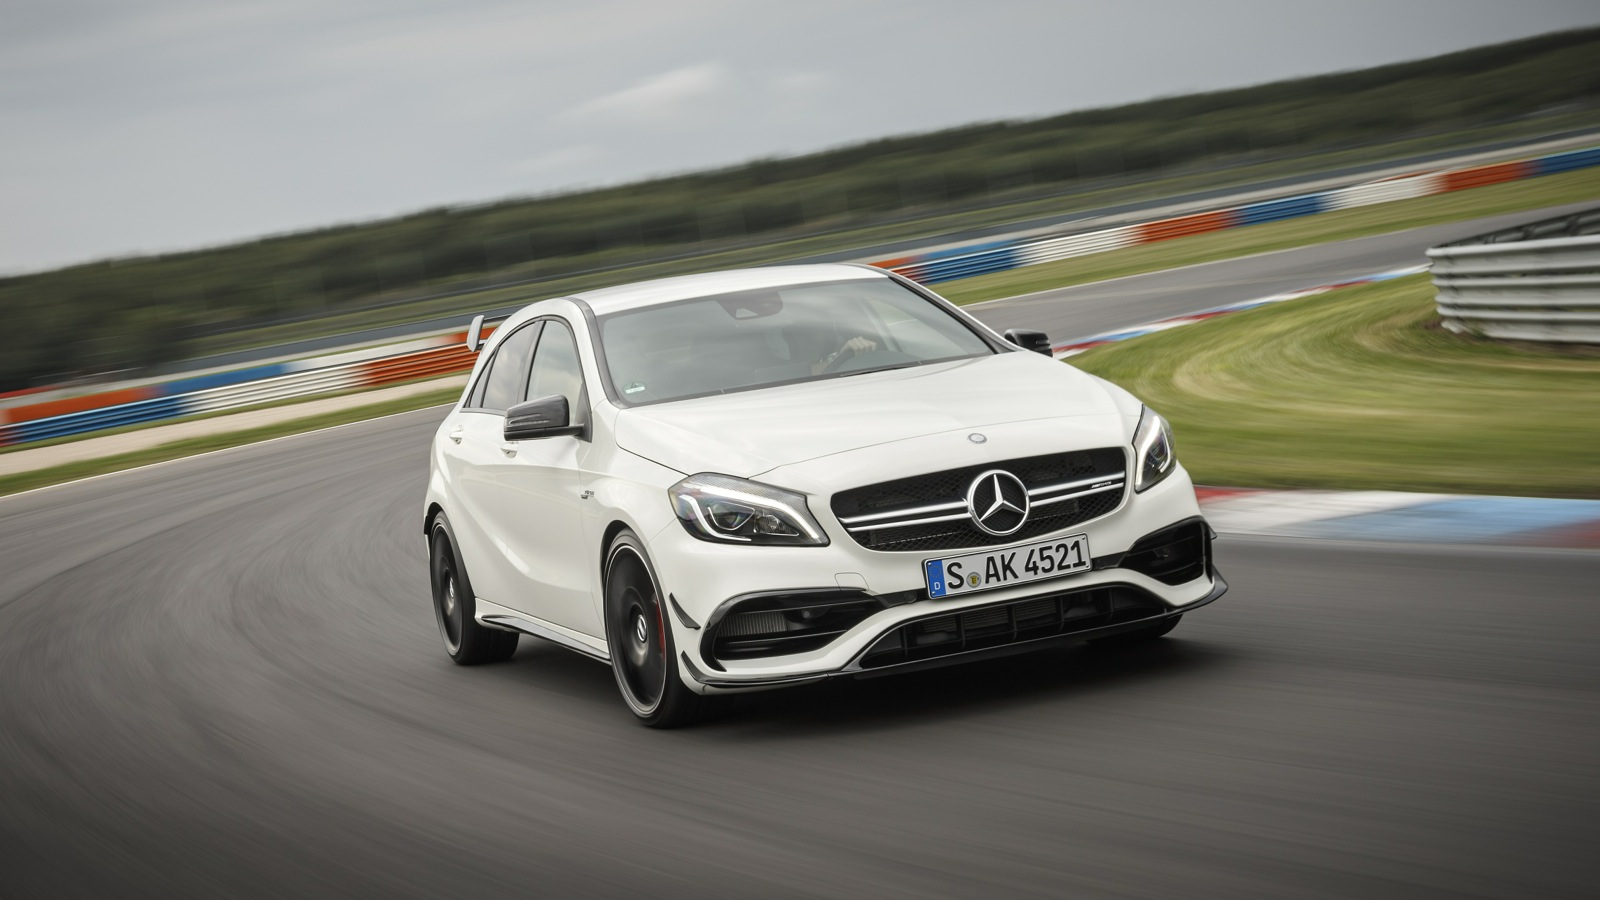 2016 mercedes amg a45 4matic review track test photos caradvice. Black Bedroom Furniture Sets. Home Design Ideas